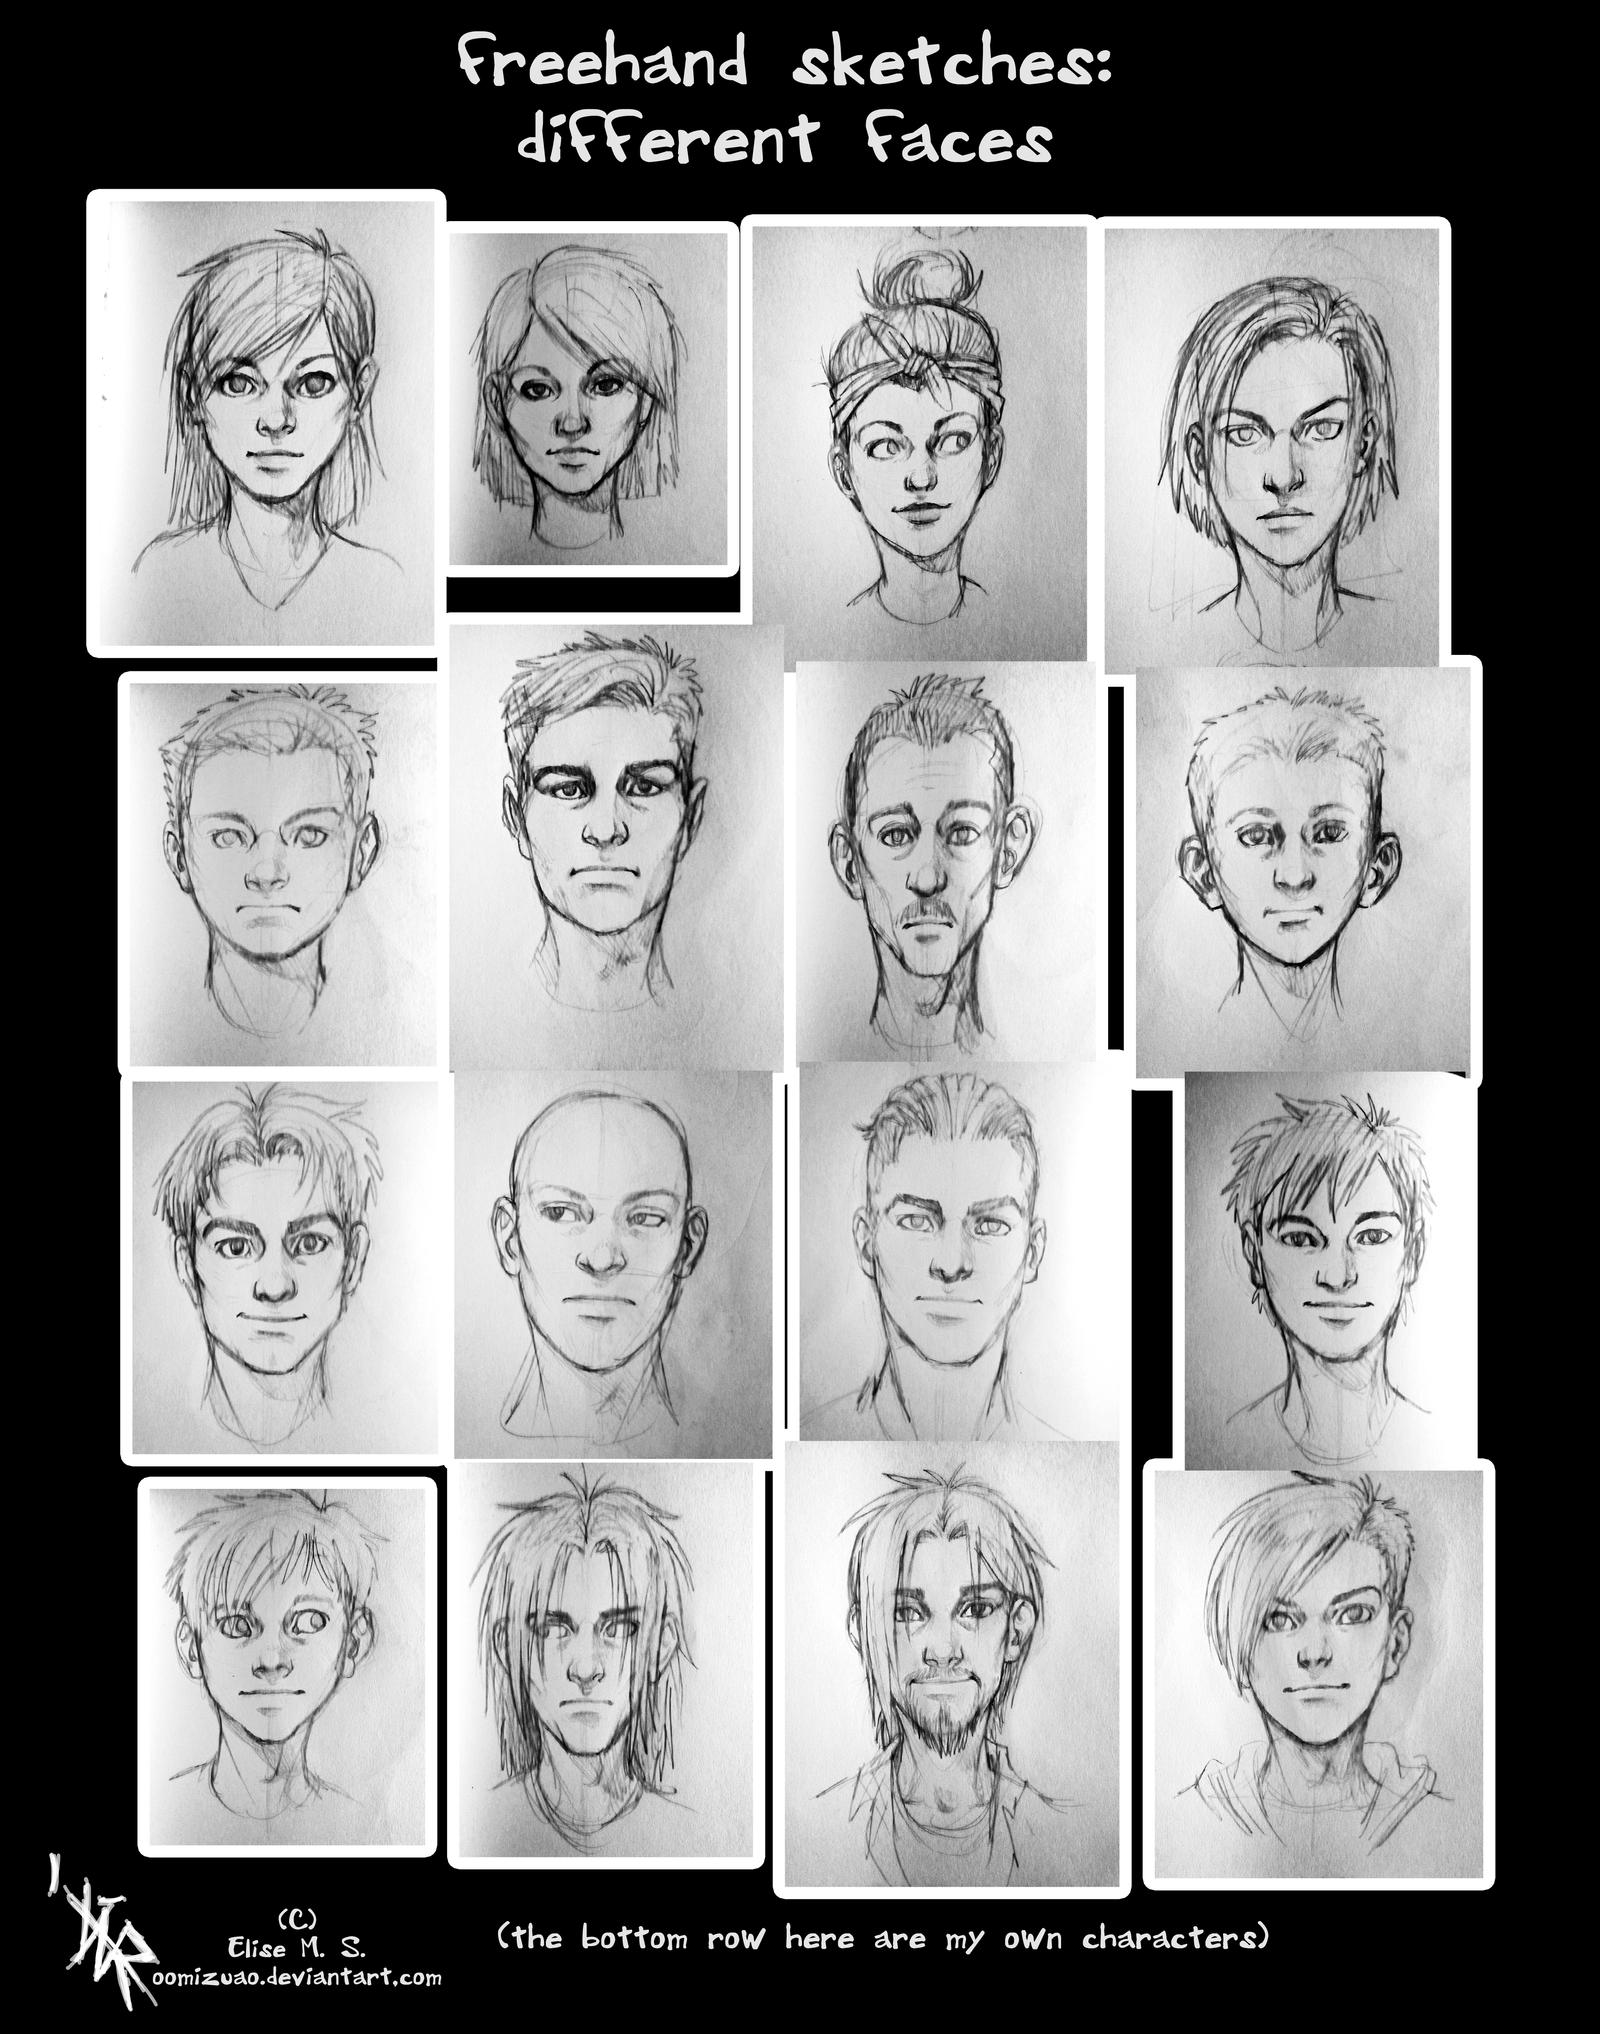 different drawing styles list sketches different types by oomizuao on deviantart 10640